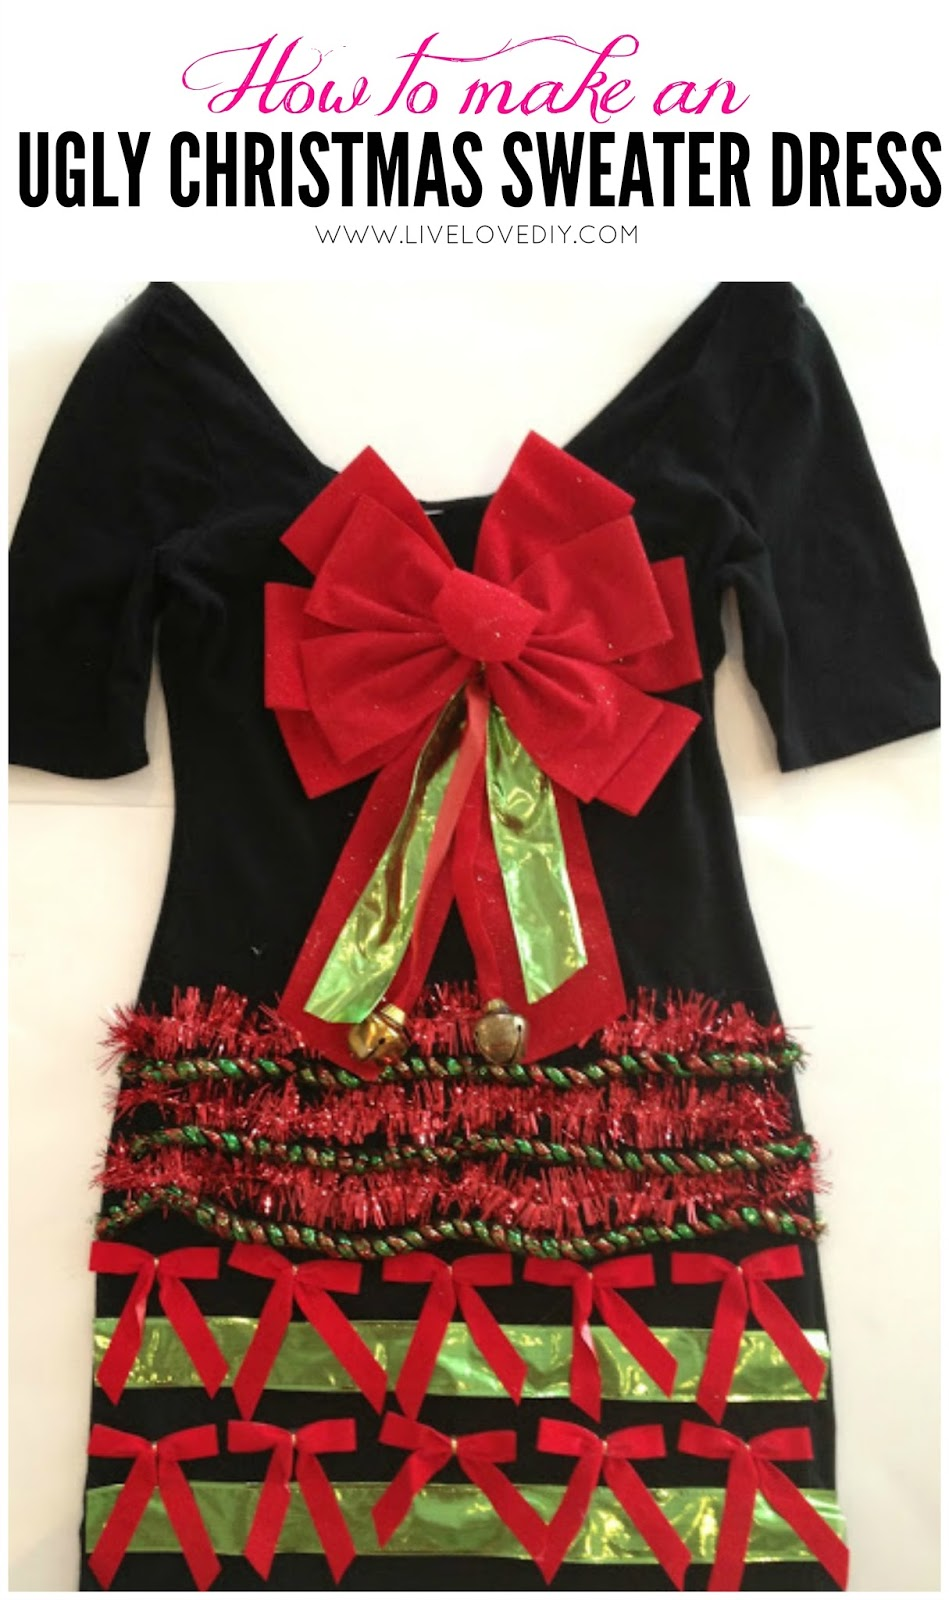 94cd87c05ab LiveLoveDIY  How To Make An Ugly Christmas Sweater Dress